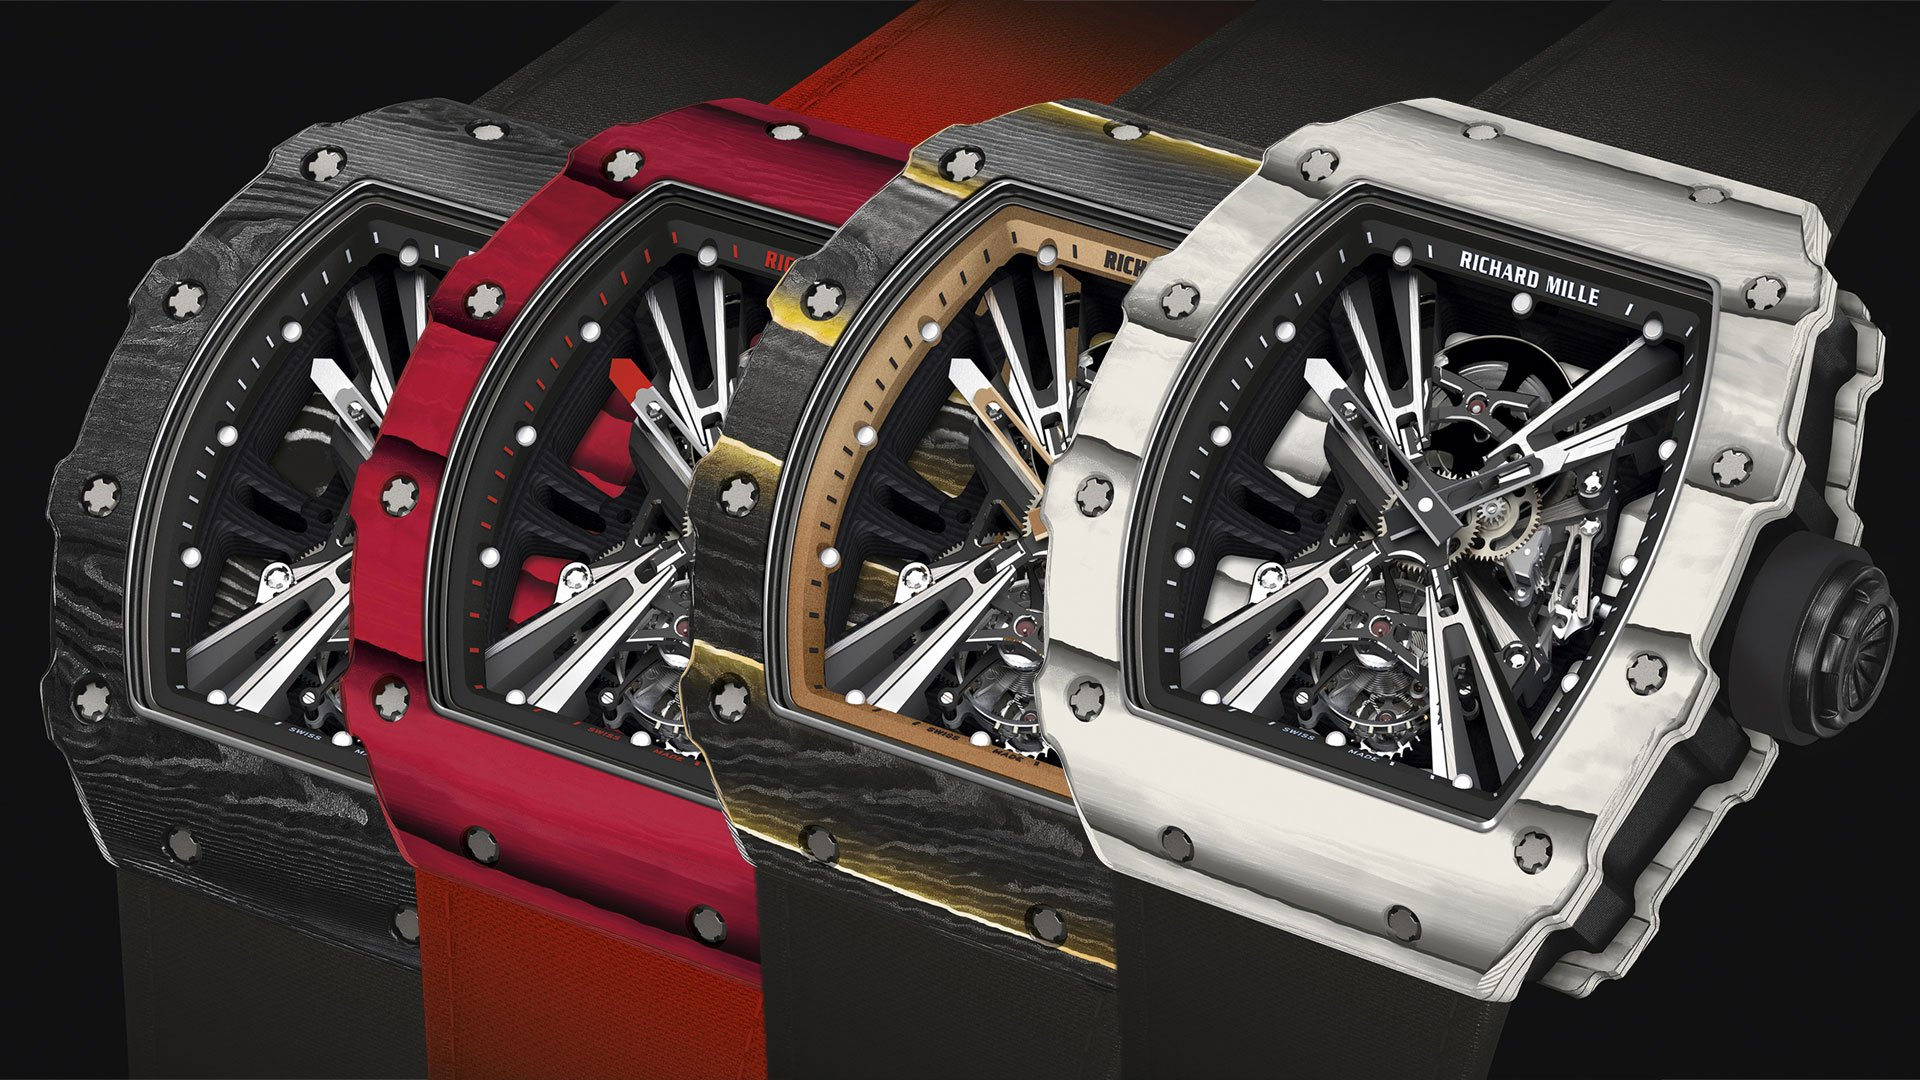 Up Close With The Limited Edition Richard Mille Rm 12 01 Tourbillon